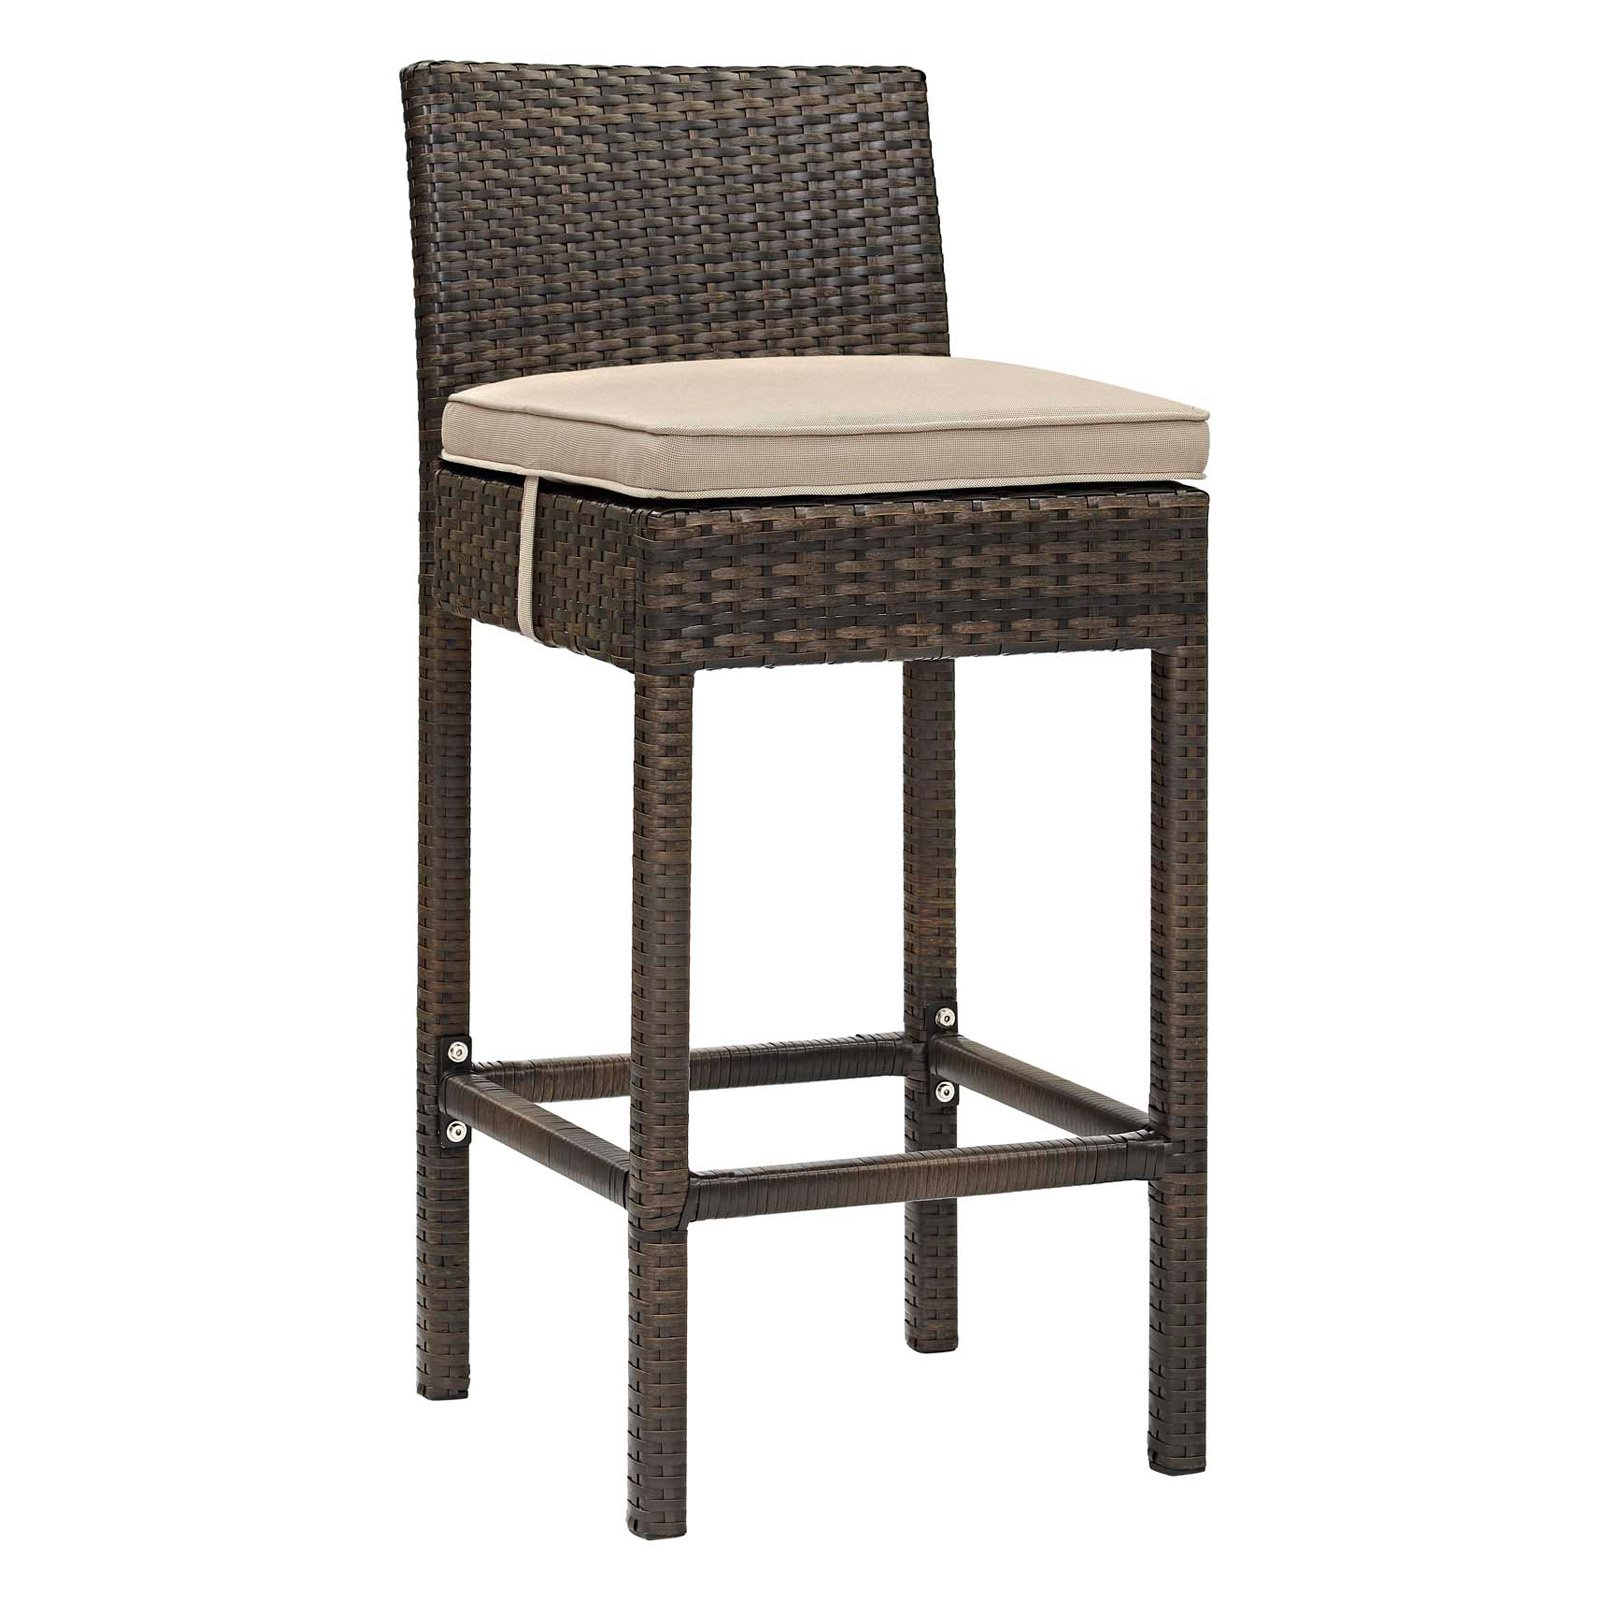 Modway Conduit Outdoor Patio Wicker Rattan Bar Stool, Multiple Colors